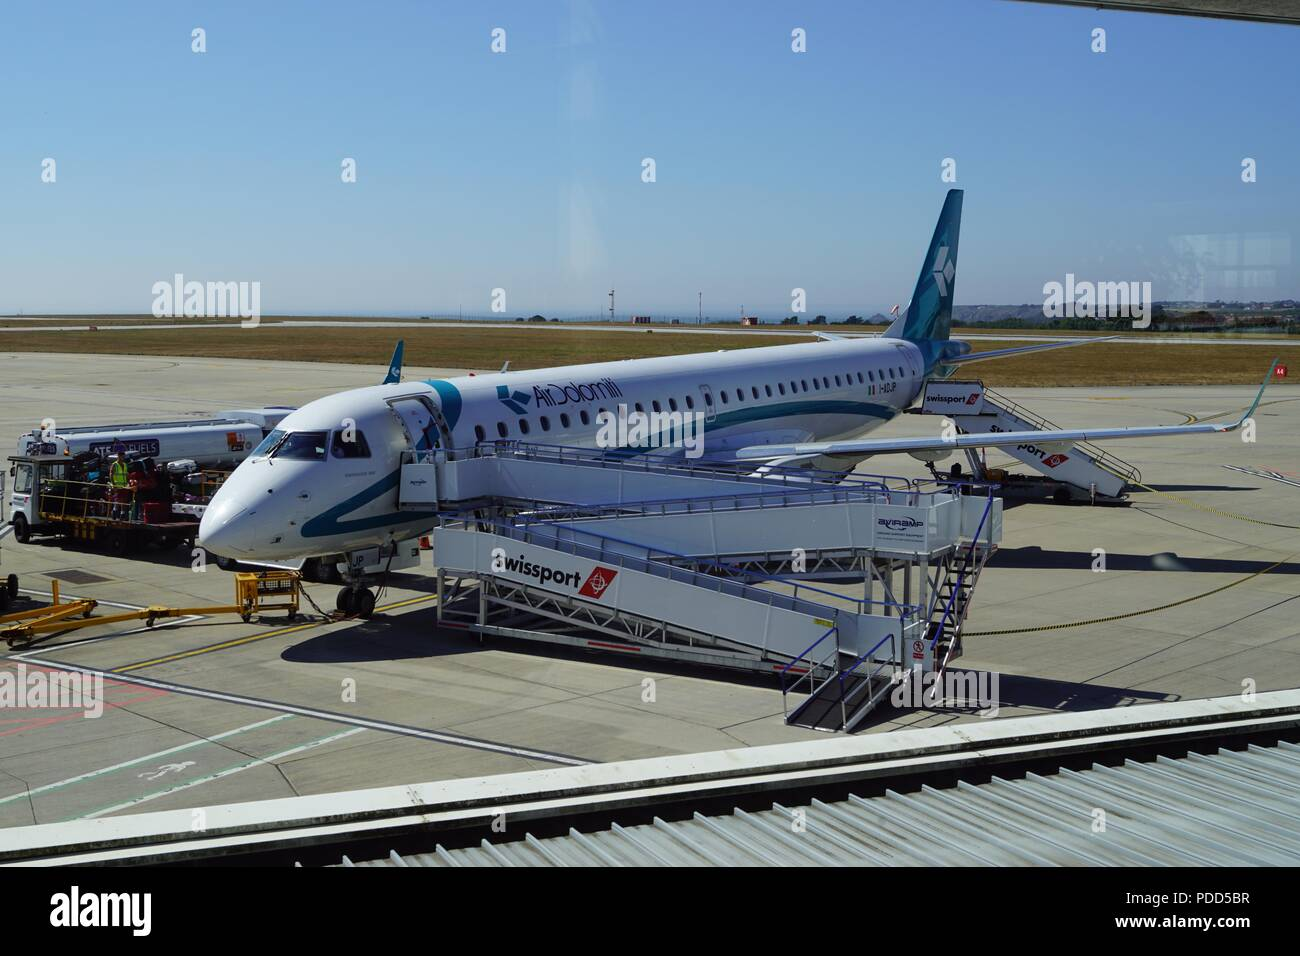 Embraer 195 I-ADJP of Air Dolomiti at Jersey Airport - Stock Image